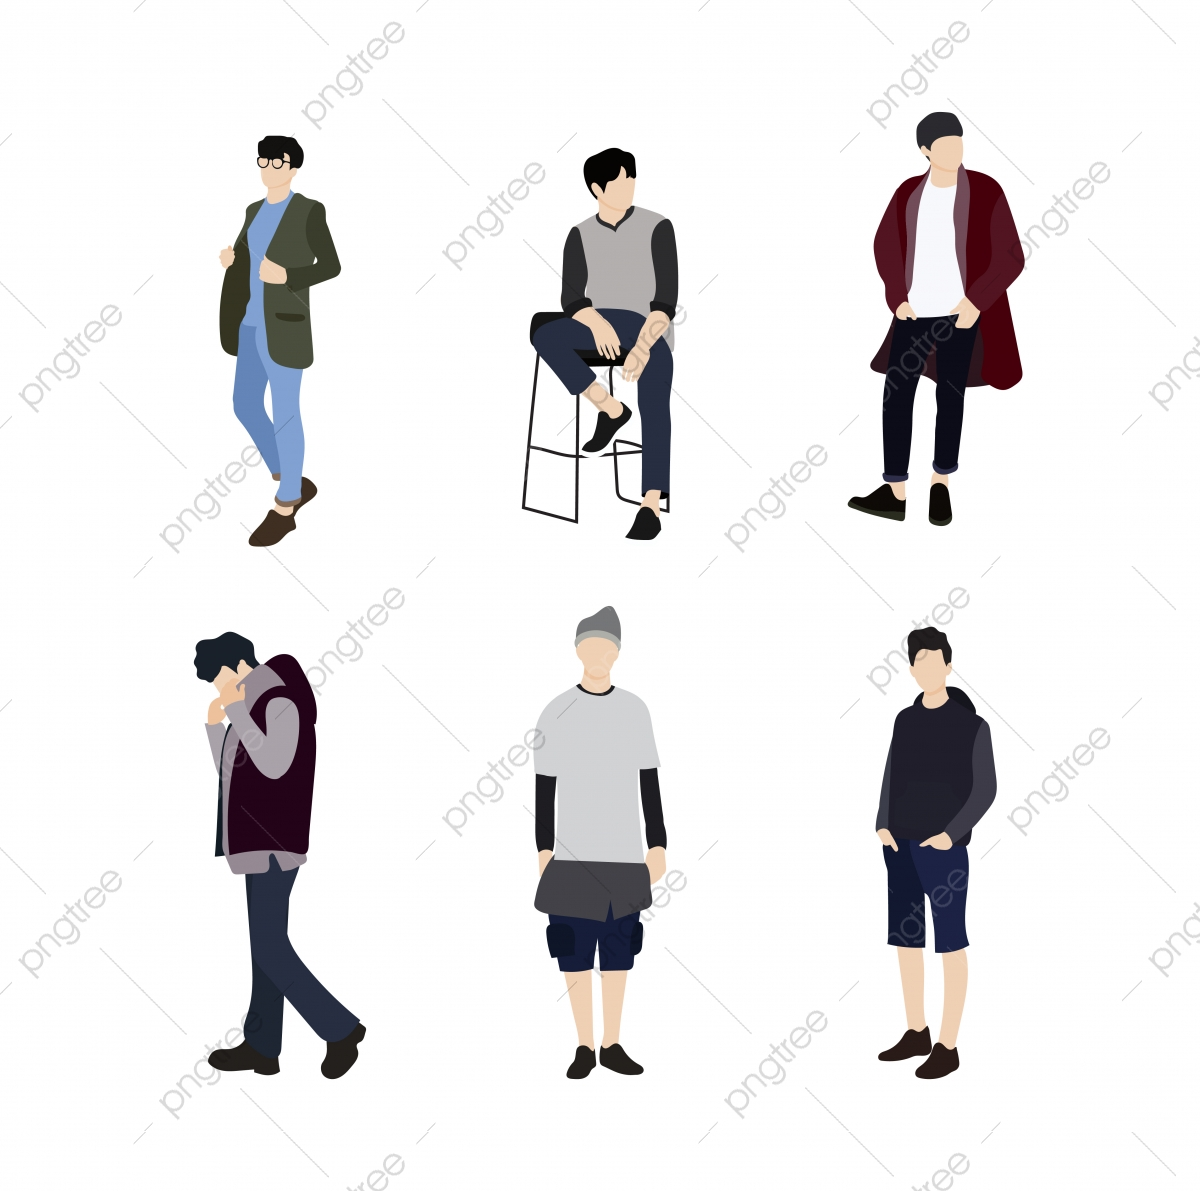 set of korean male clothes people person korean vector png and vector with transparent background for free download https pngtree com freepng set of korean male clothes people 5316366 html